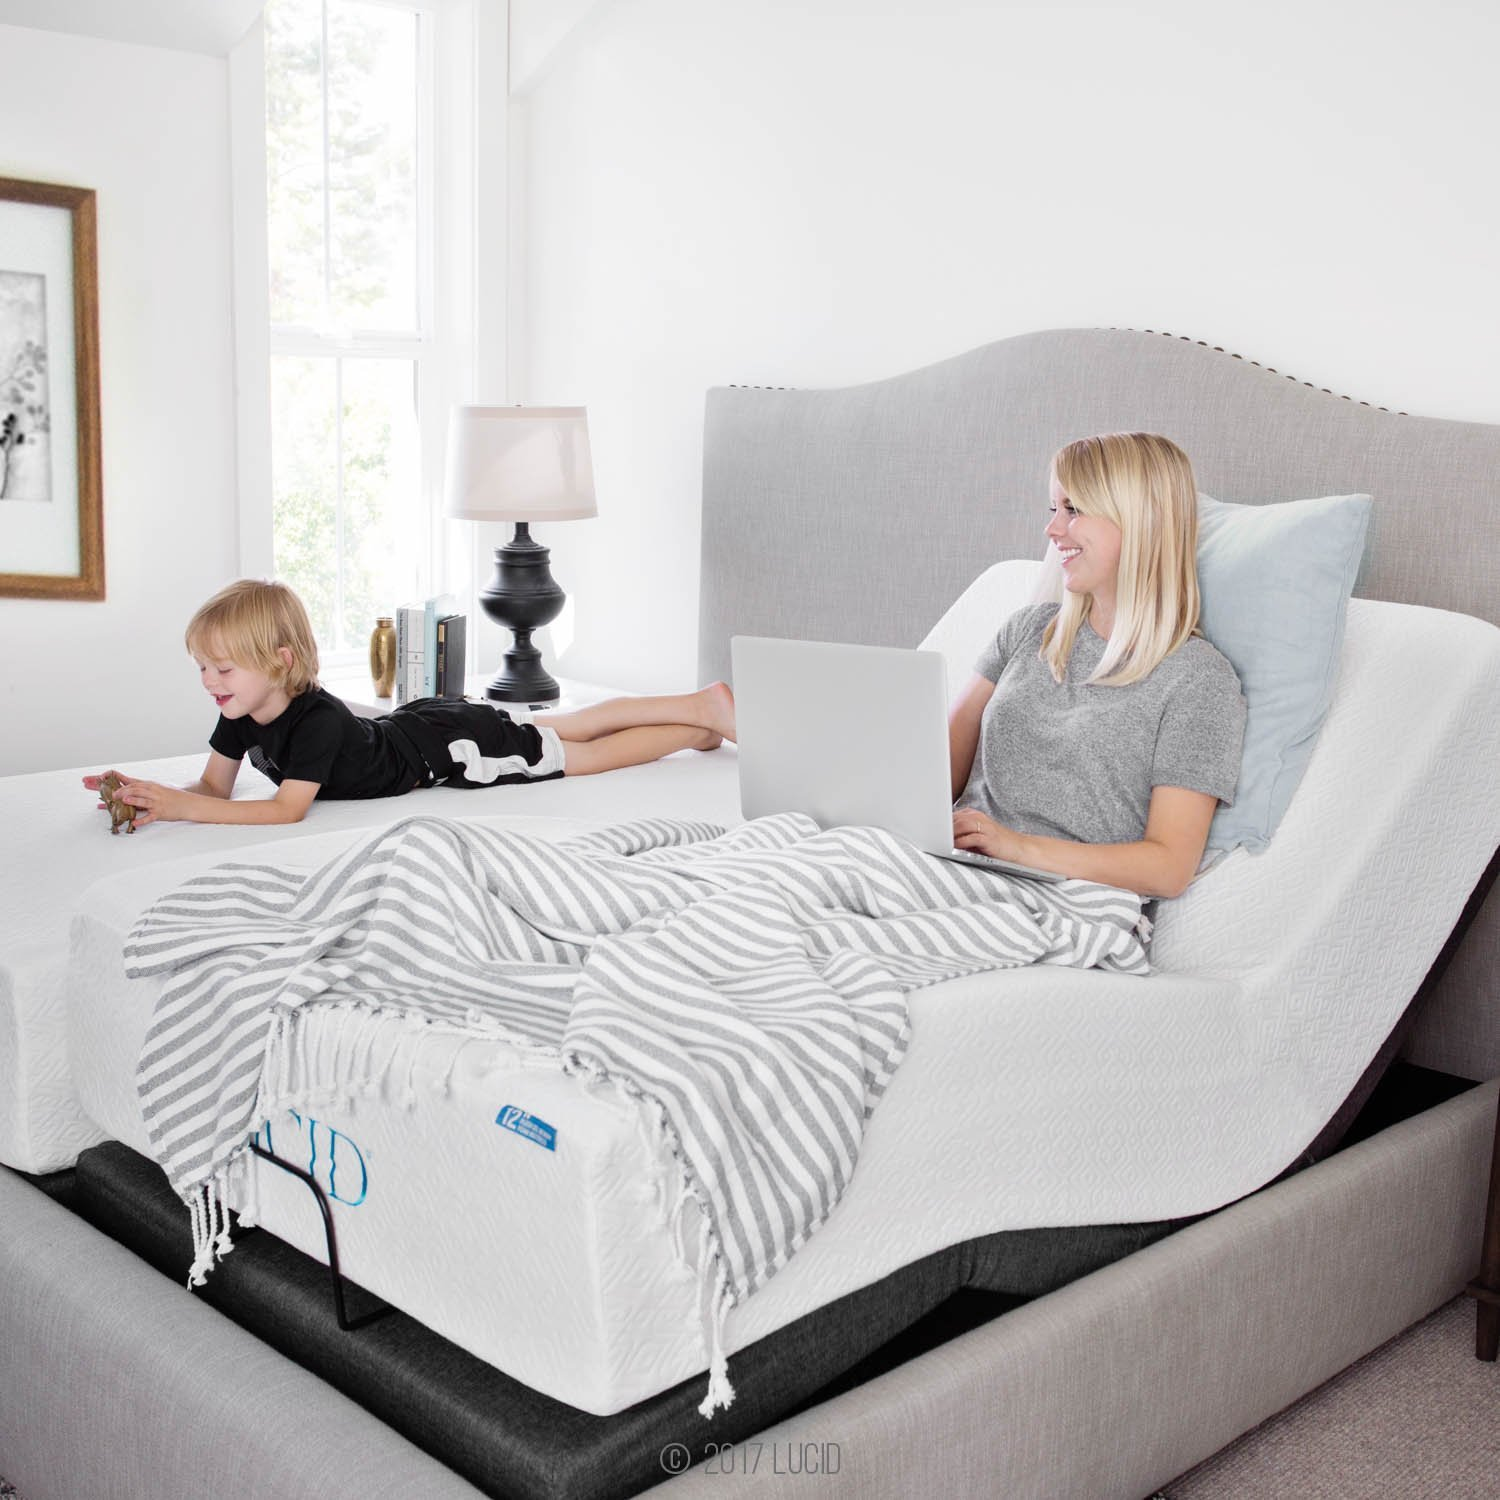 LUCID L300 Adjustable Bed Base 5 Minute Assembly Dual USB Charging Stations  Head And Foot Incline Wireless Remote Control Upholstered Ergonomic, Twin  XL, ...